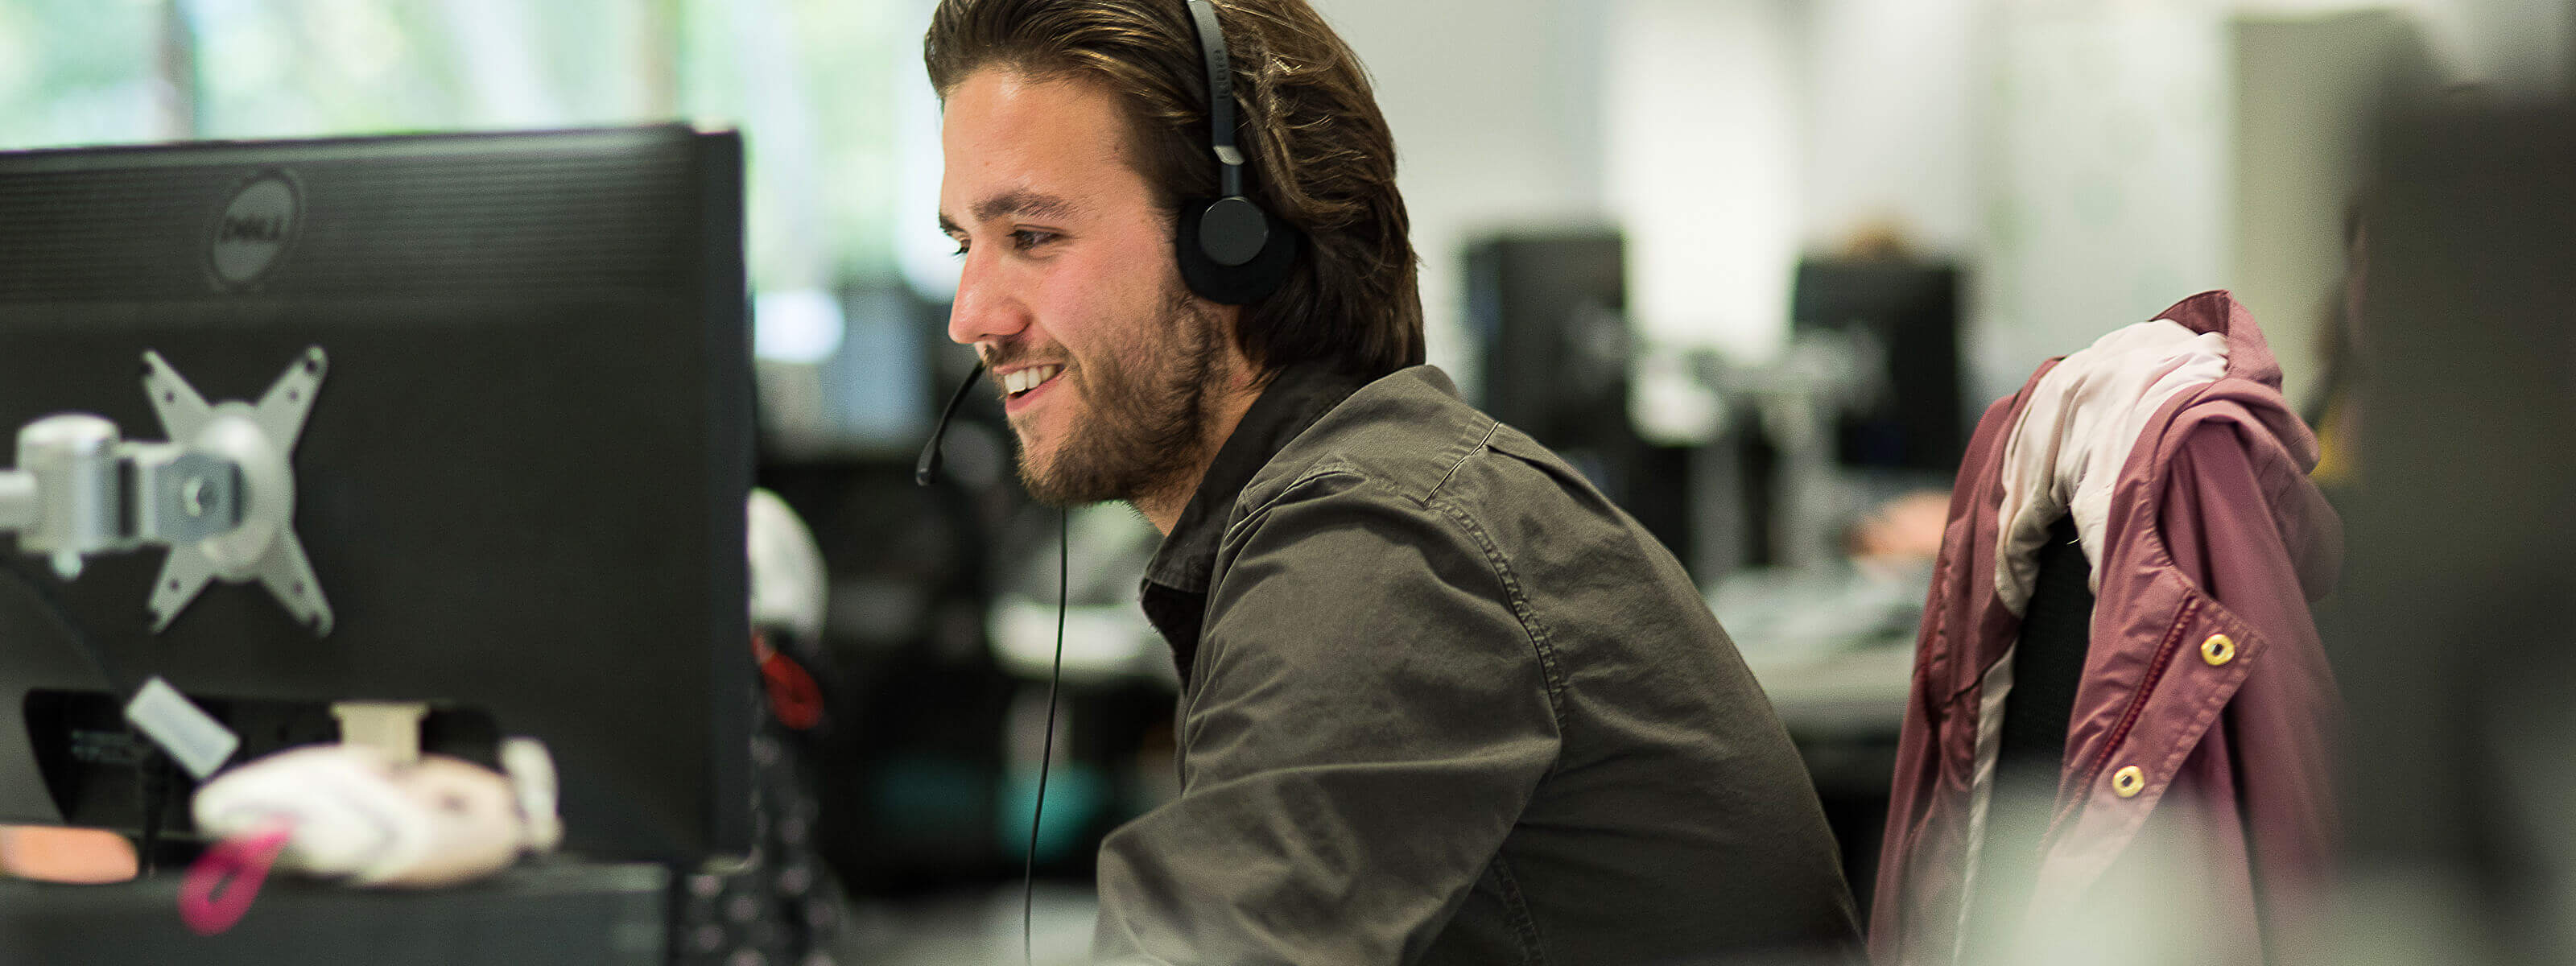 Welbeing employee on a headset